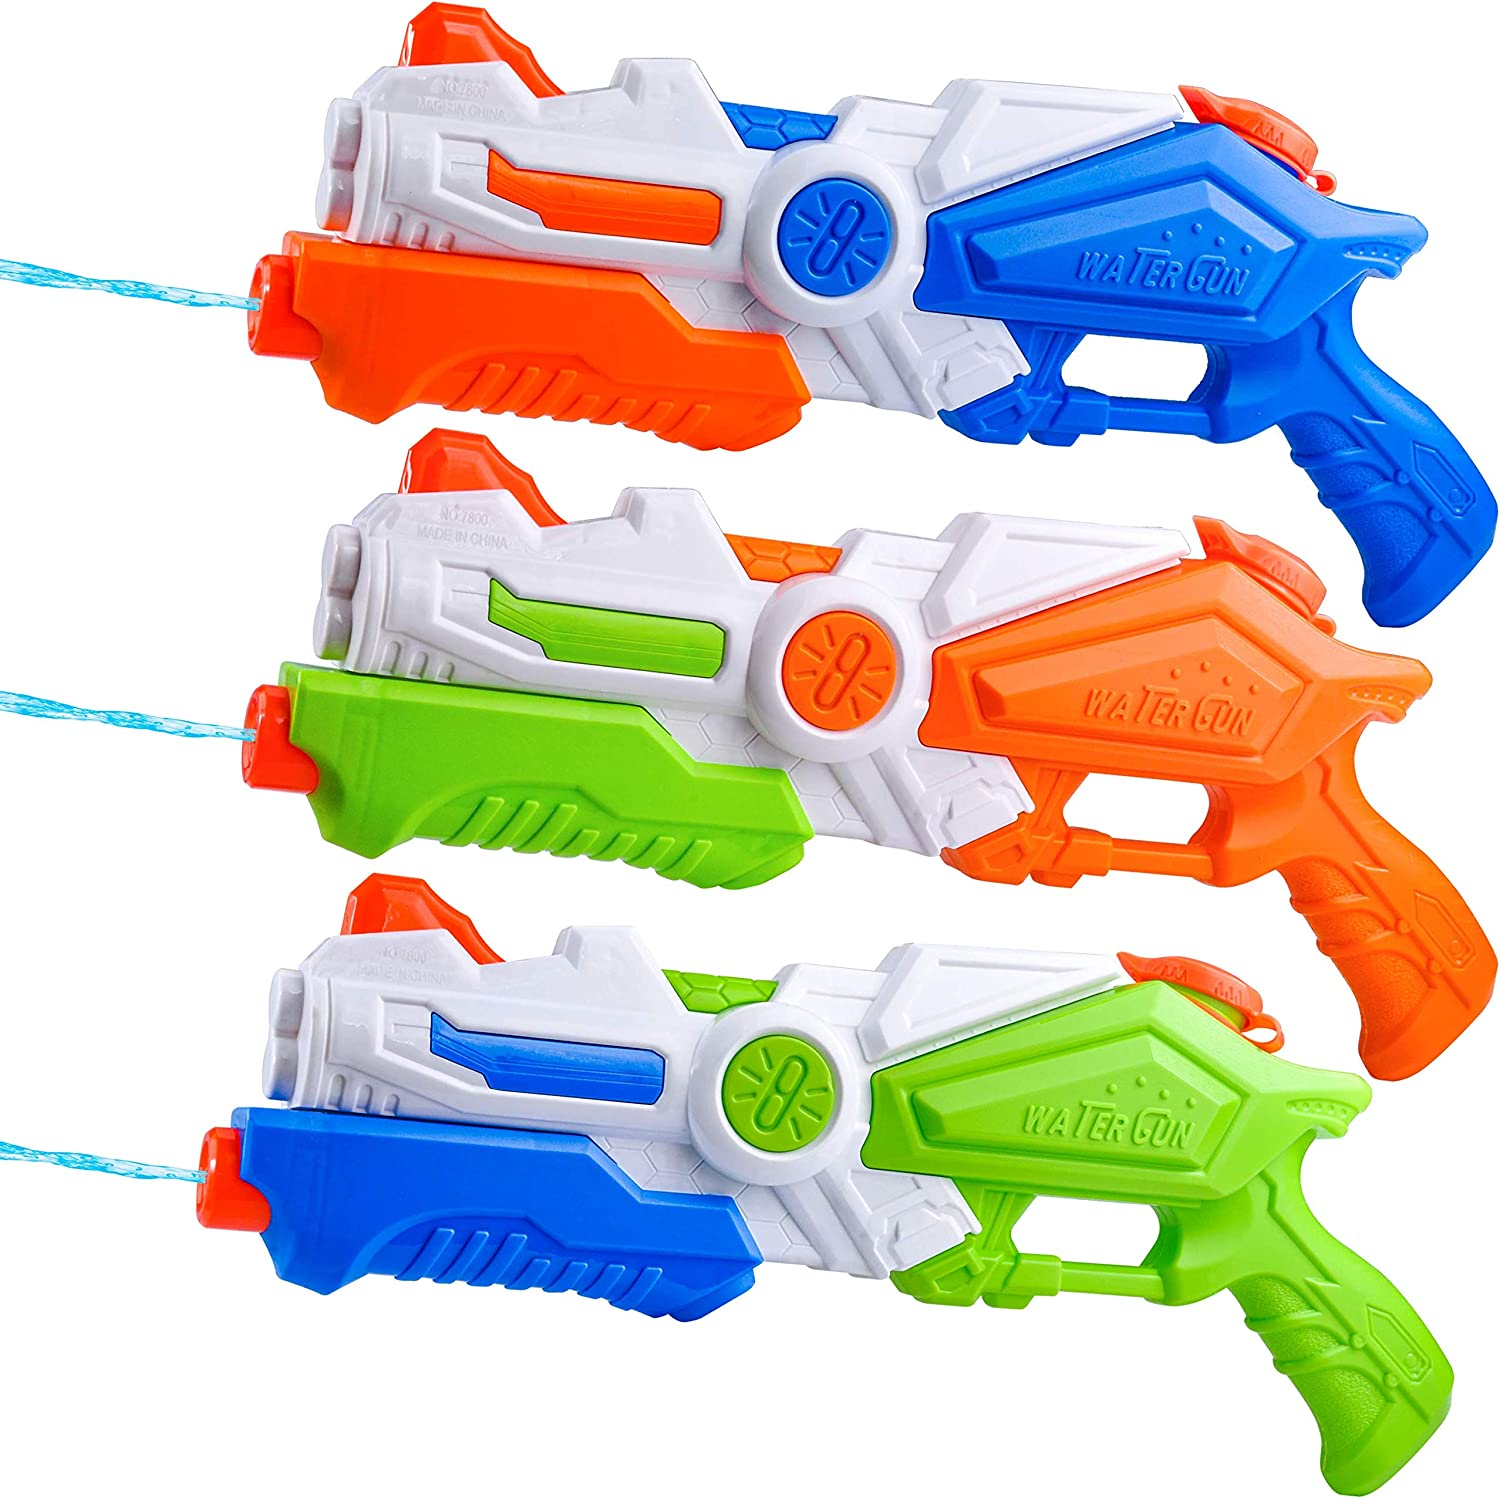 JOYIN 3 Pack Water Guns Toy Super Water Blaster Water Soaker Squirt Guns for Kids Summer Swimming Pool Beach Sand Outdoor Water Activity Fighting Play Toys